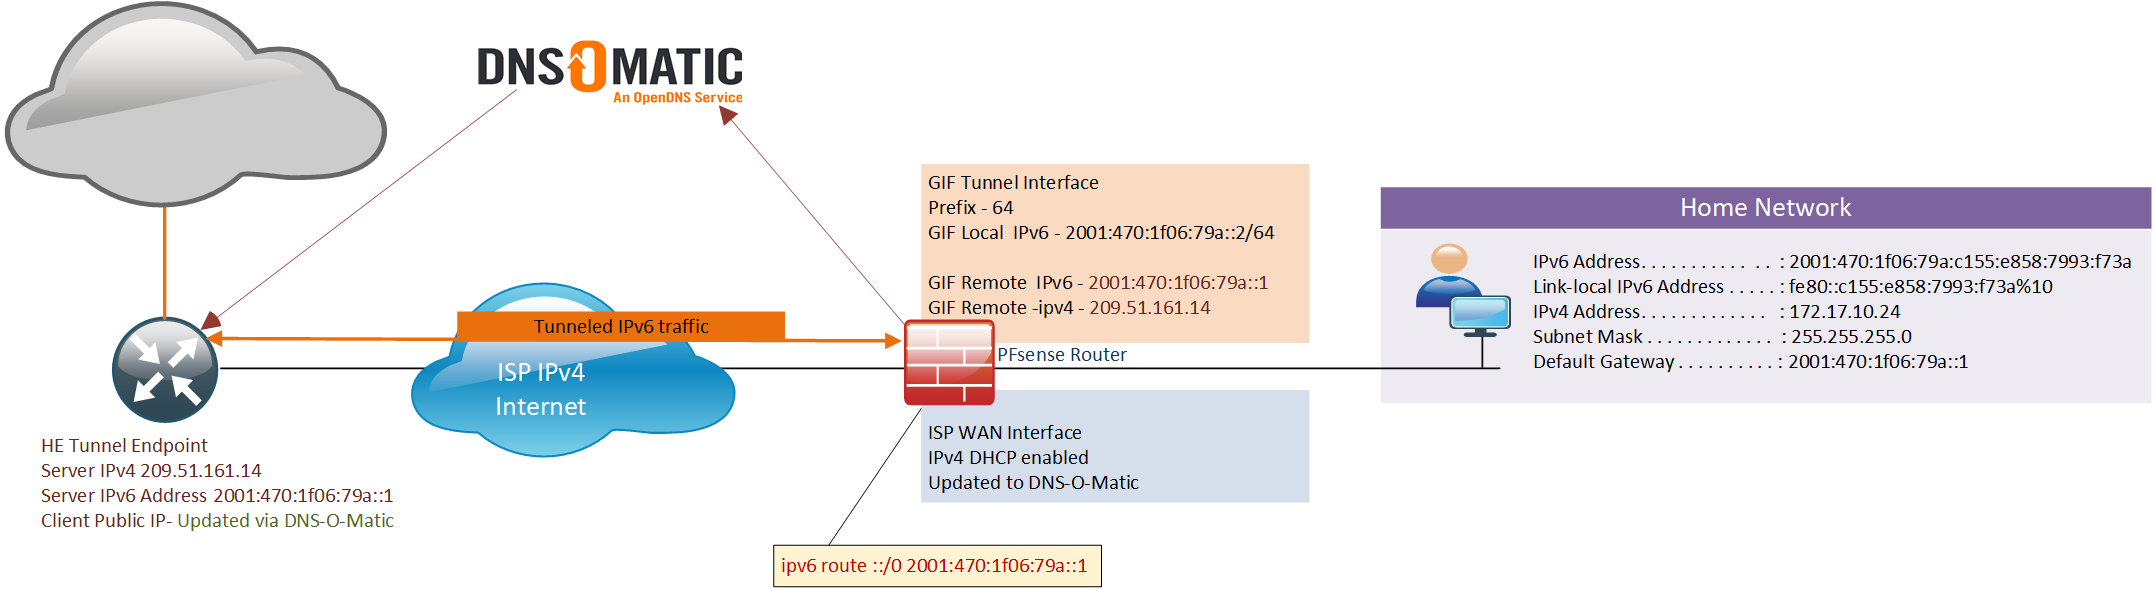 IP version 6 with Dual-stack using a Tunnel broker 6in4